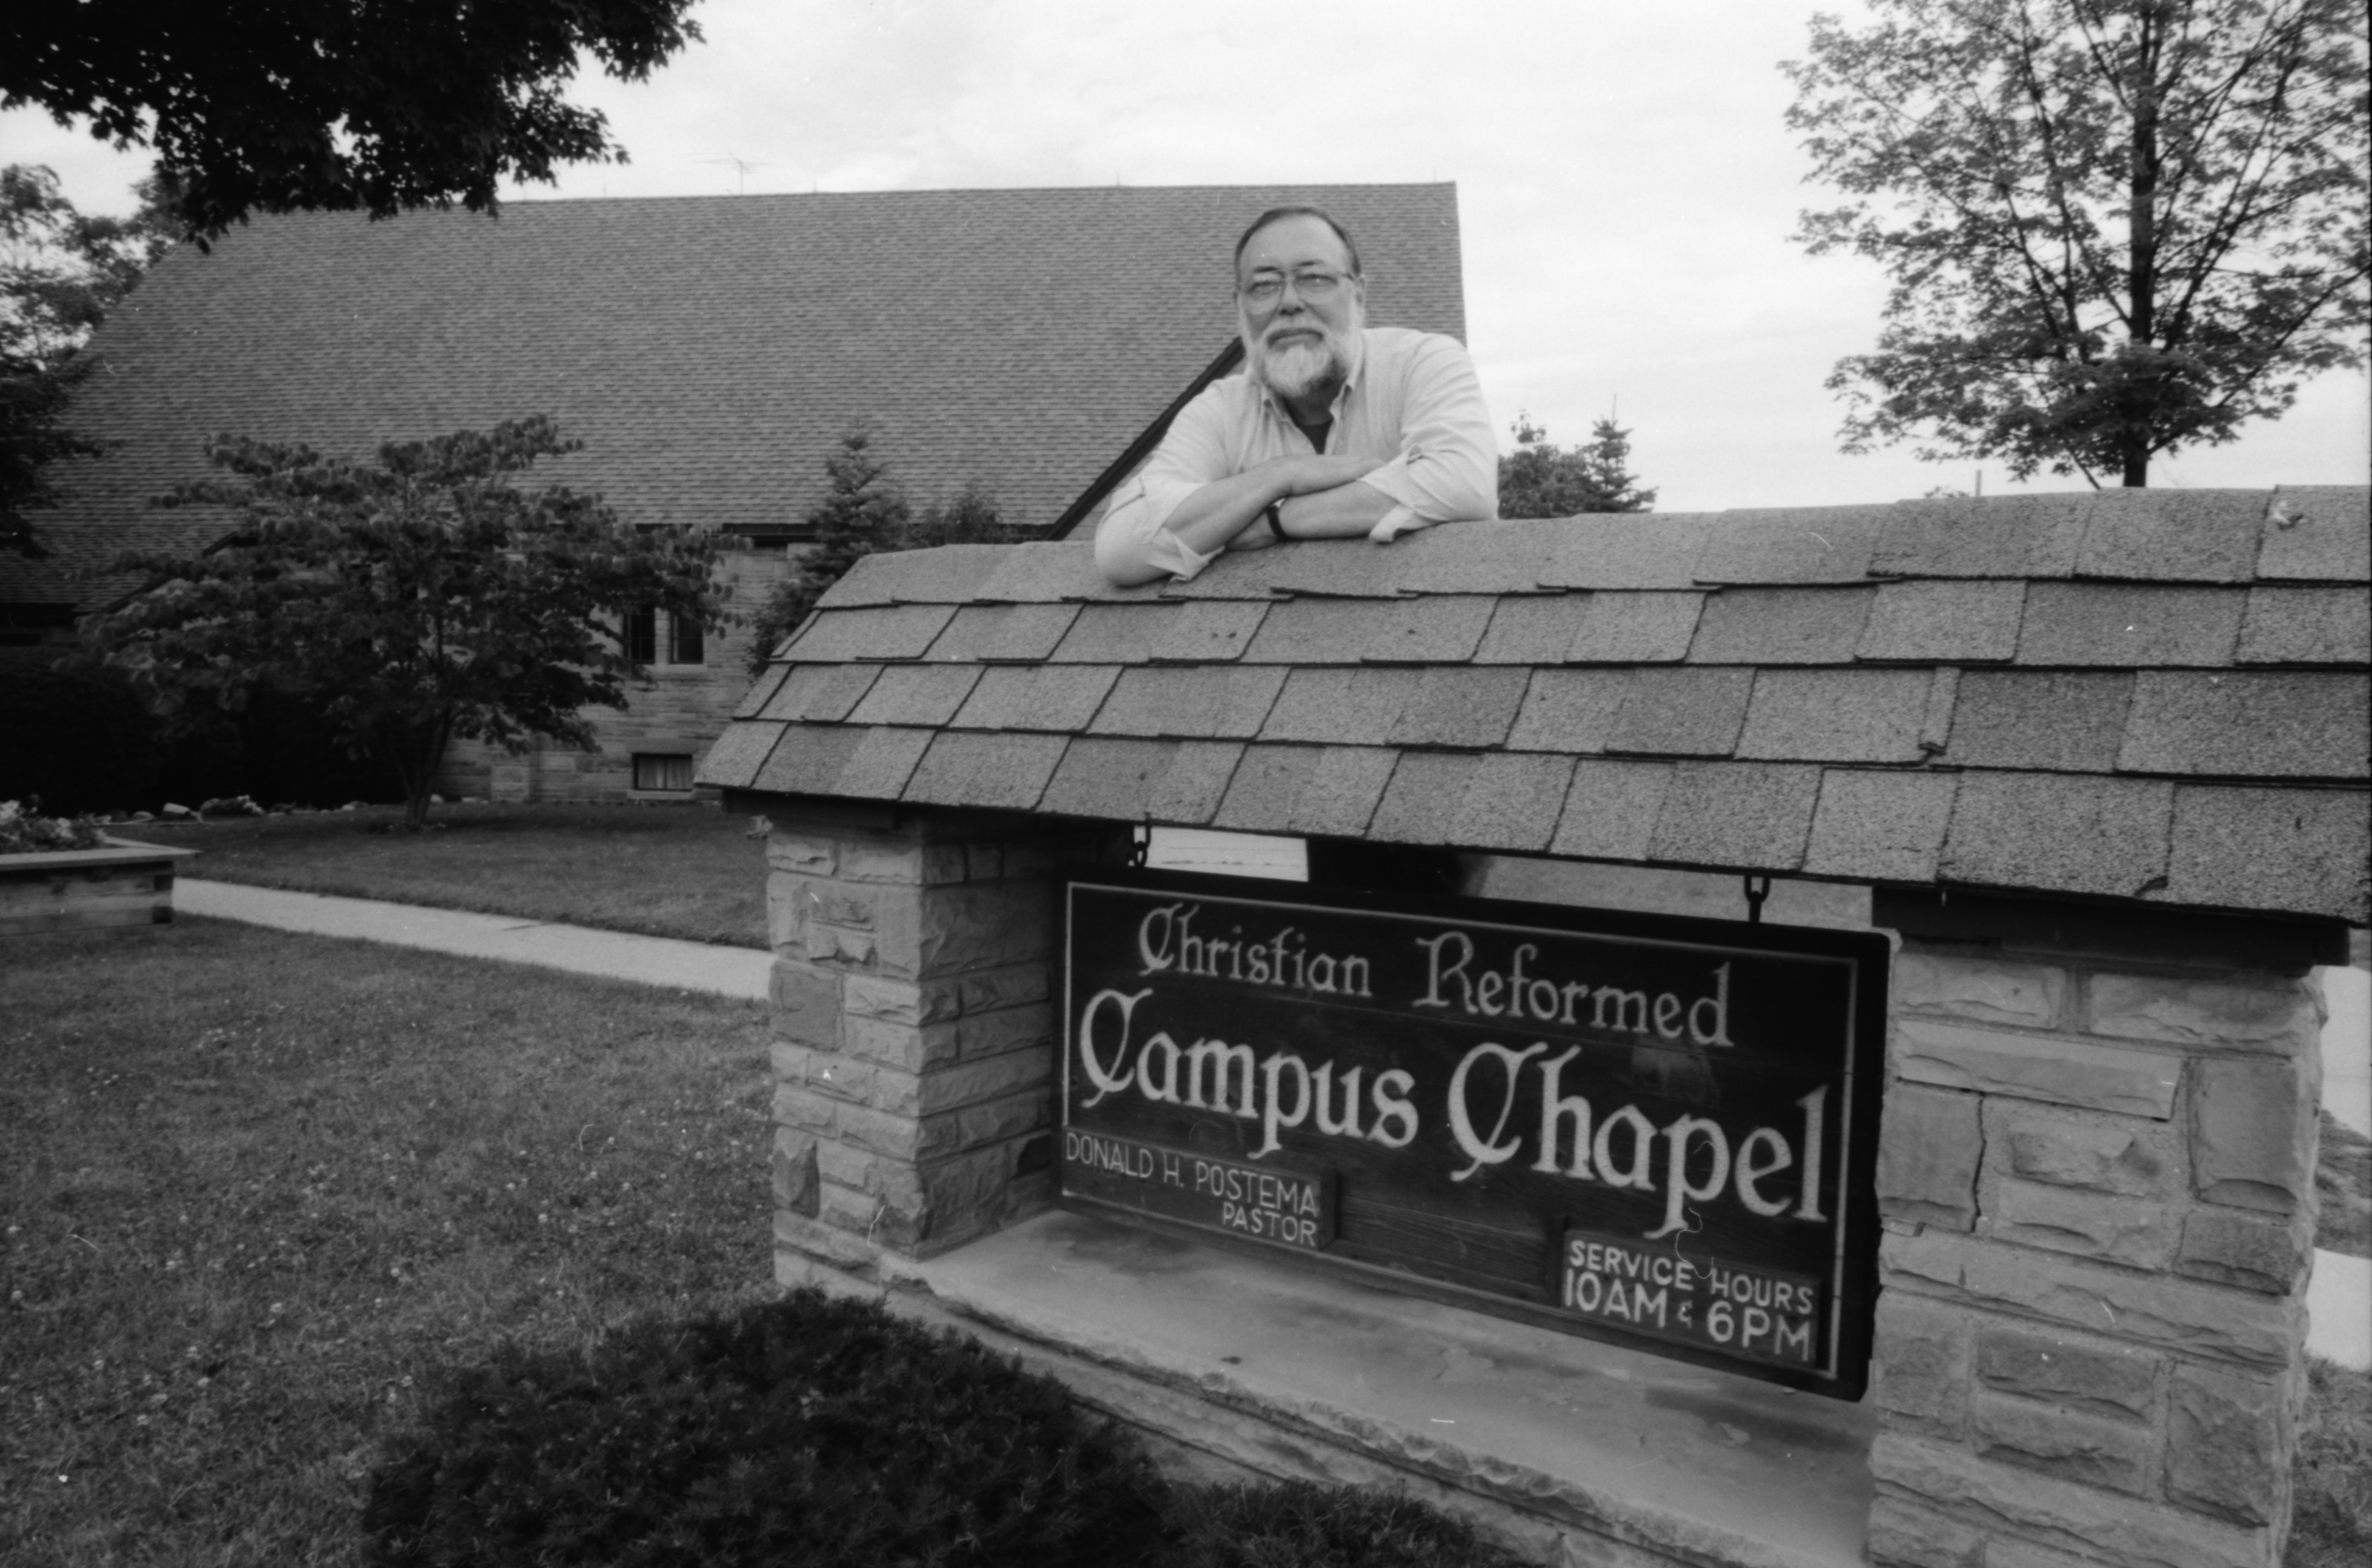 Donald H. Postema at Christian Reformed Church's Campus Chapel, July 1990 image